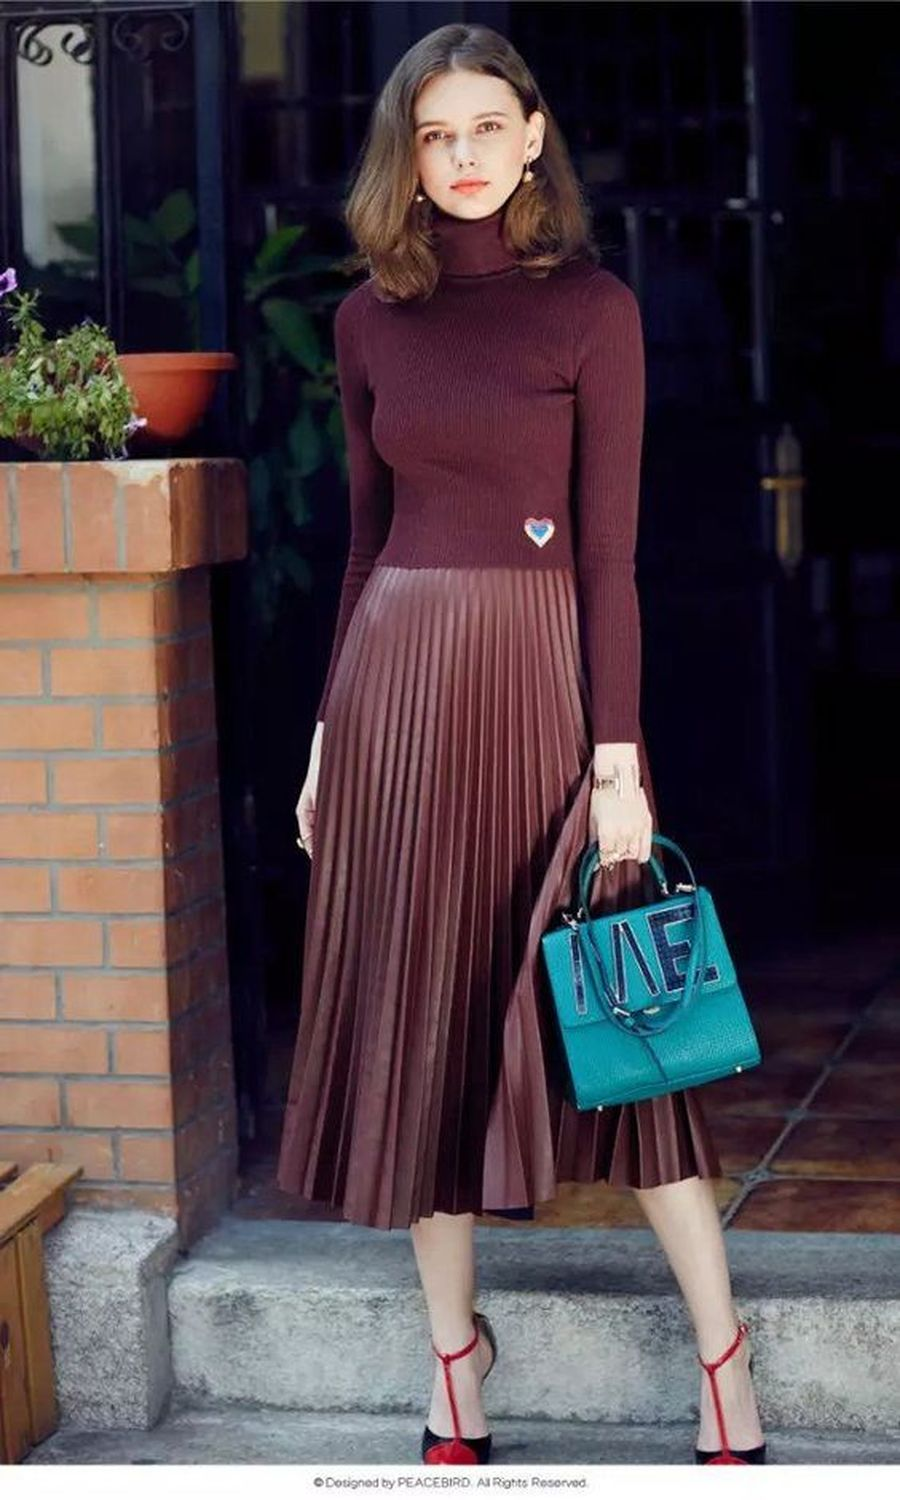 Skirt trends ideas for winter outfits this year 3